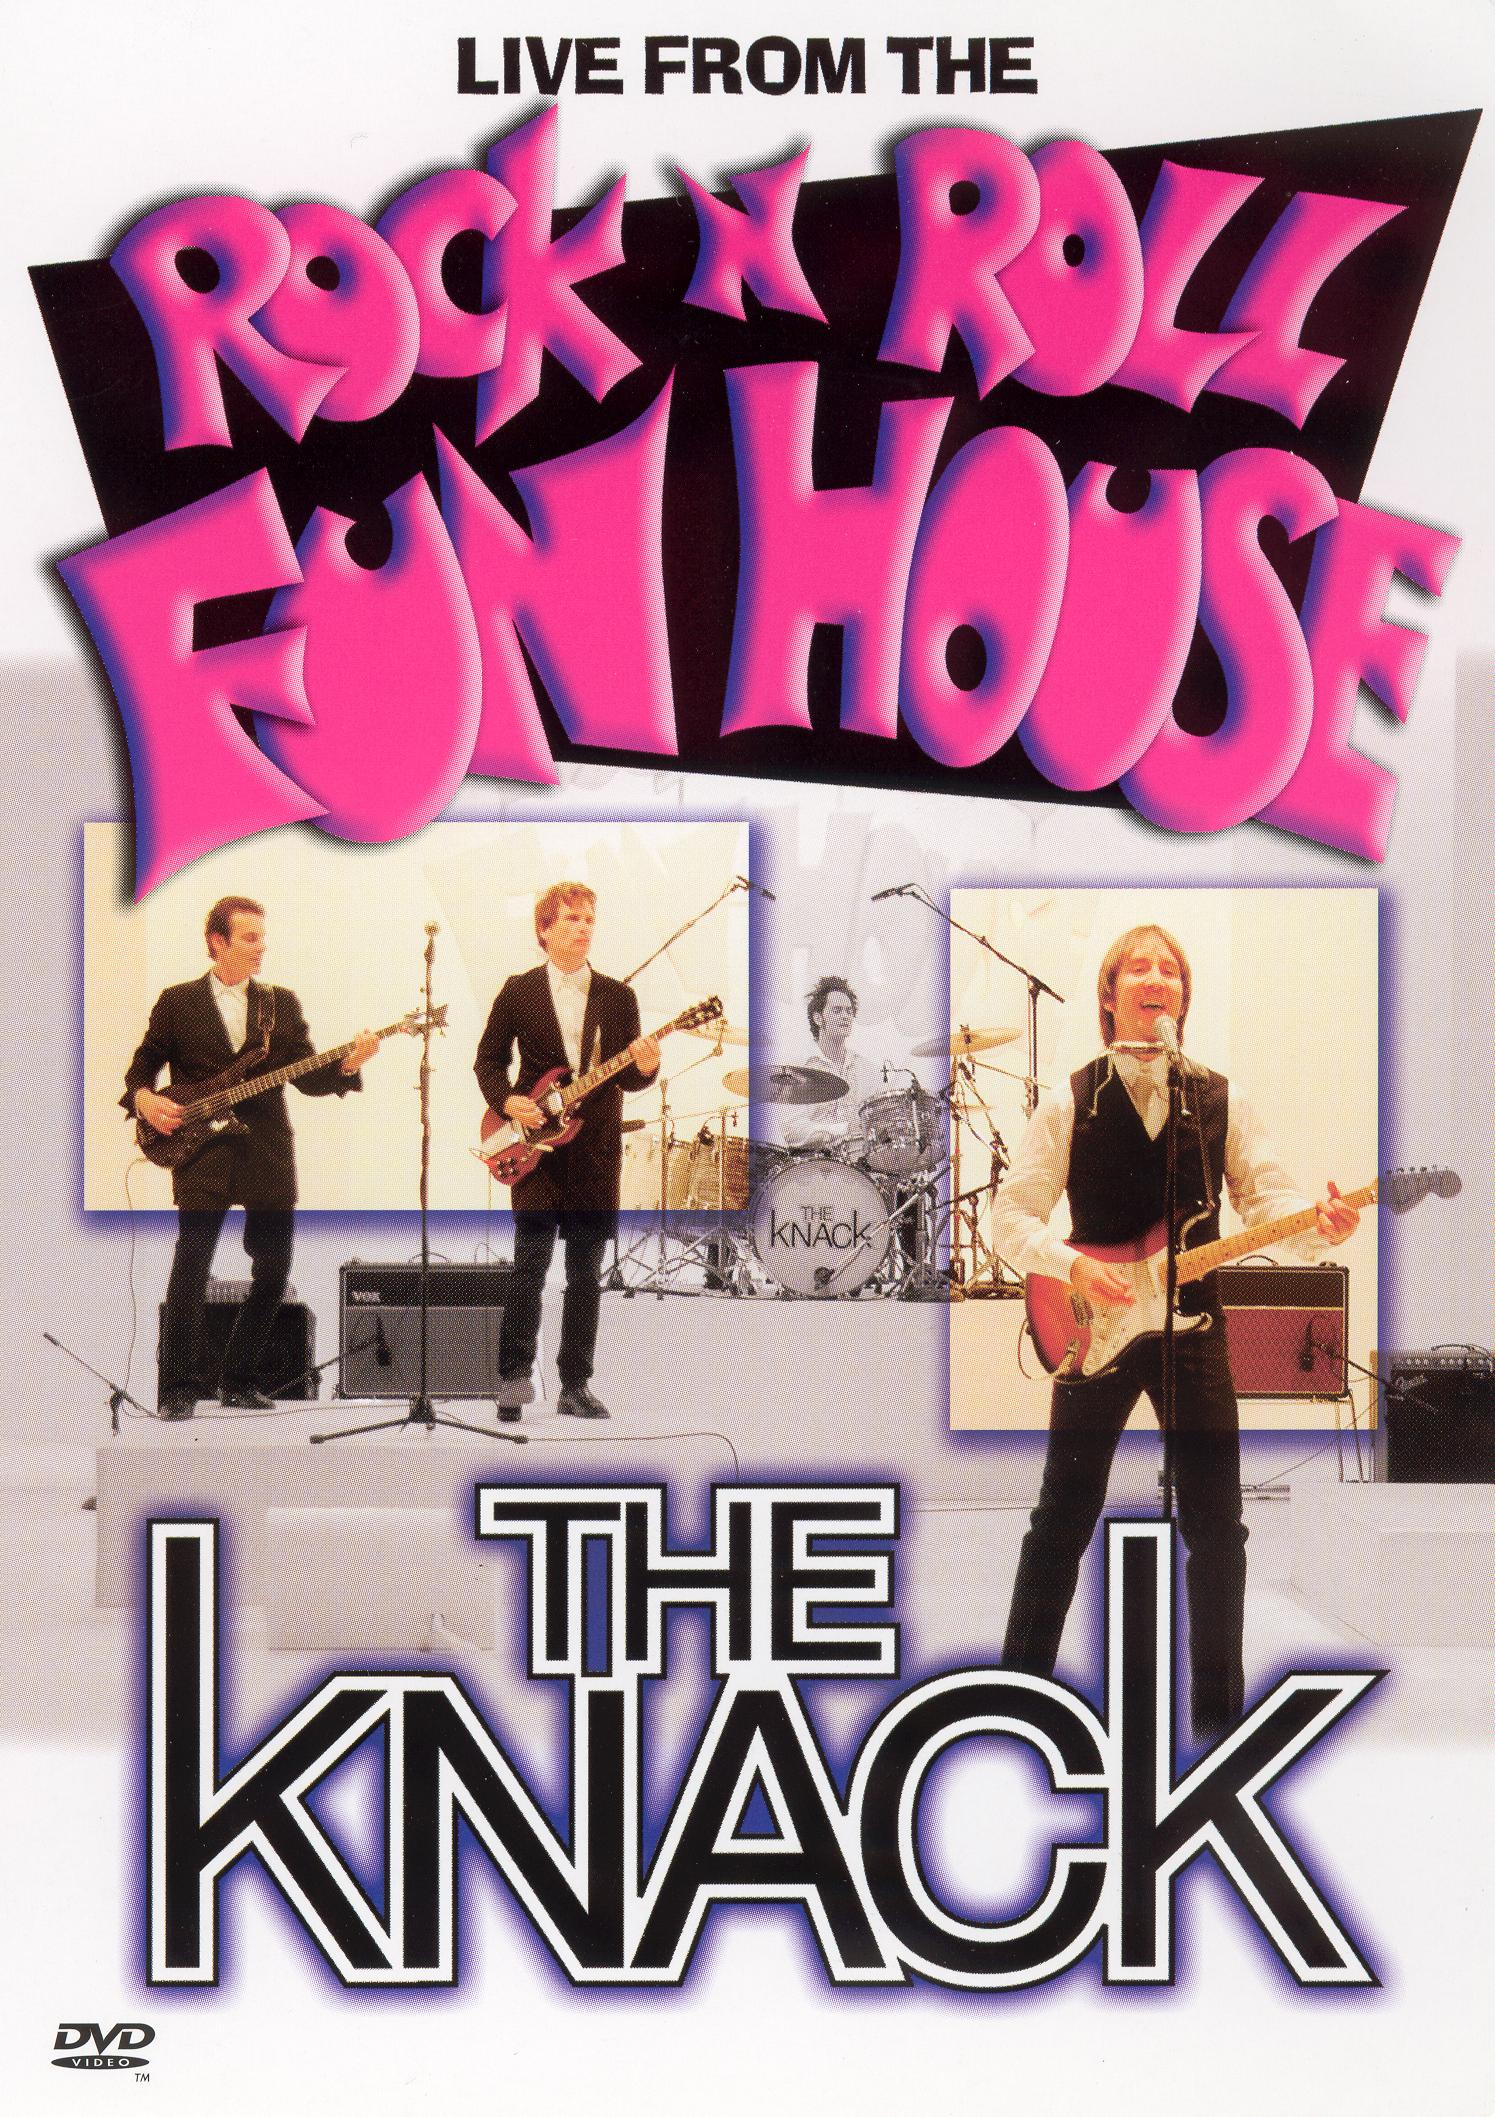 The Knack: Live From the Rock 'N' Roll Funhouse